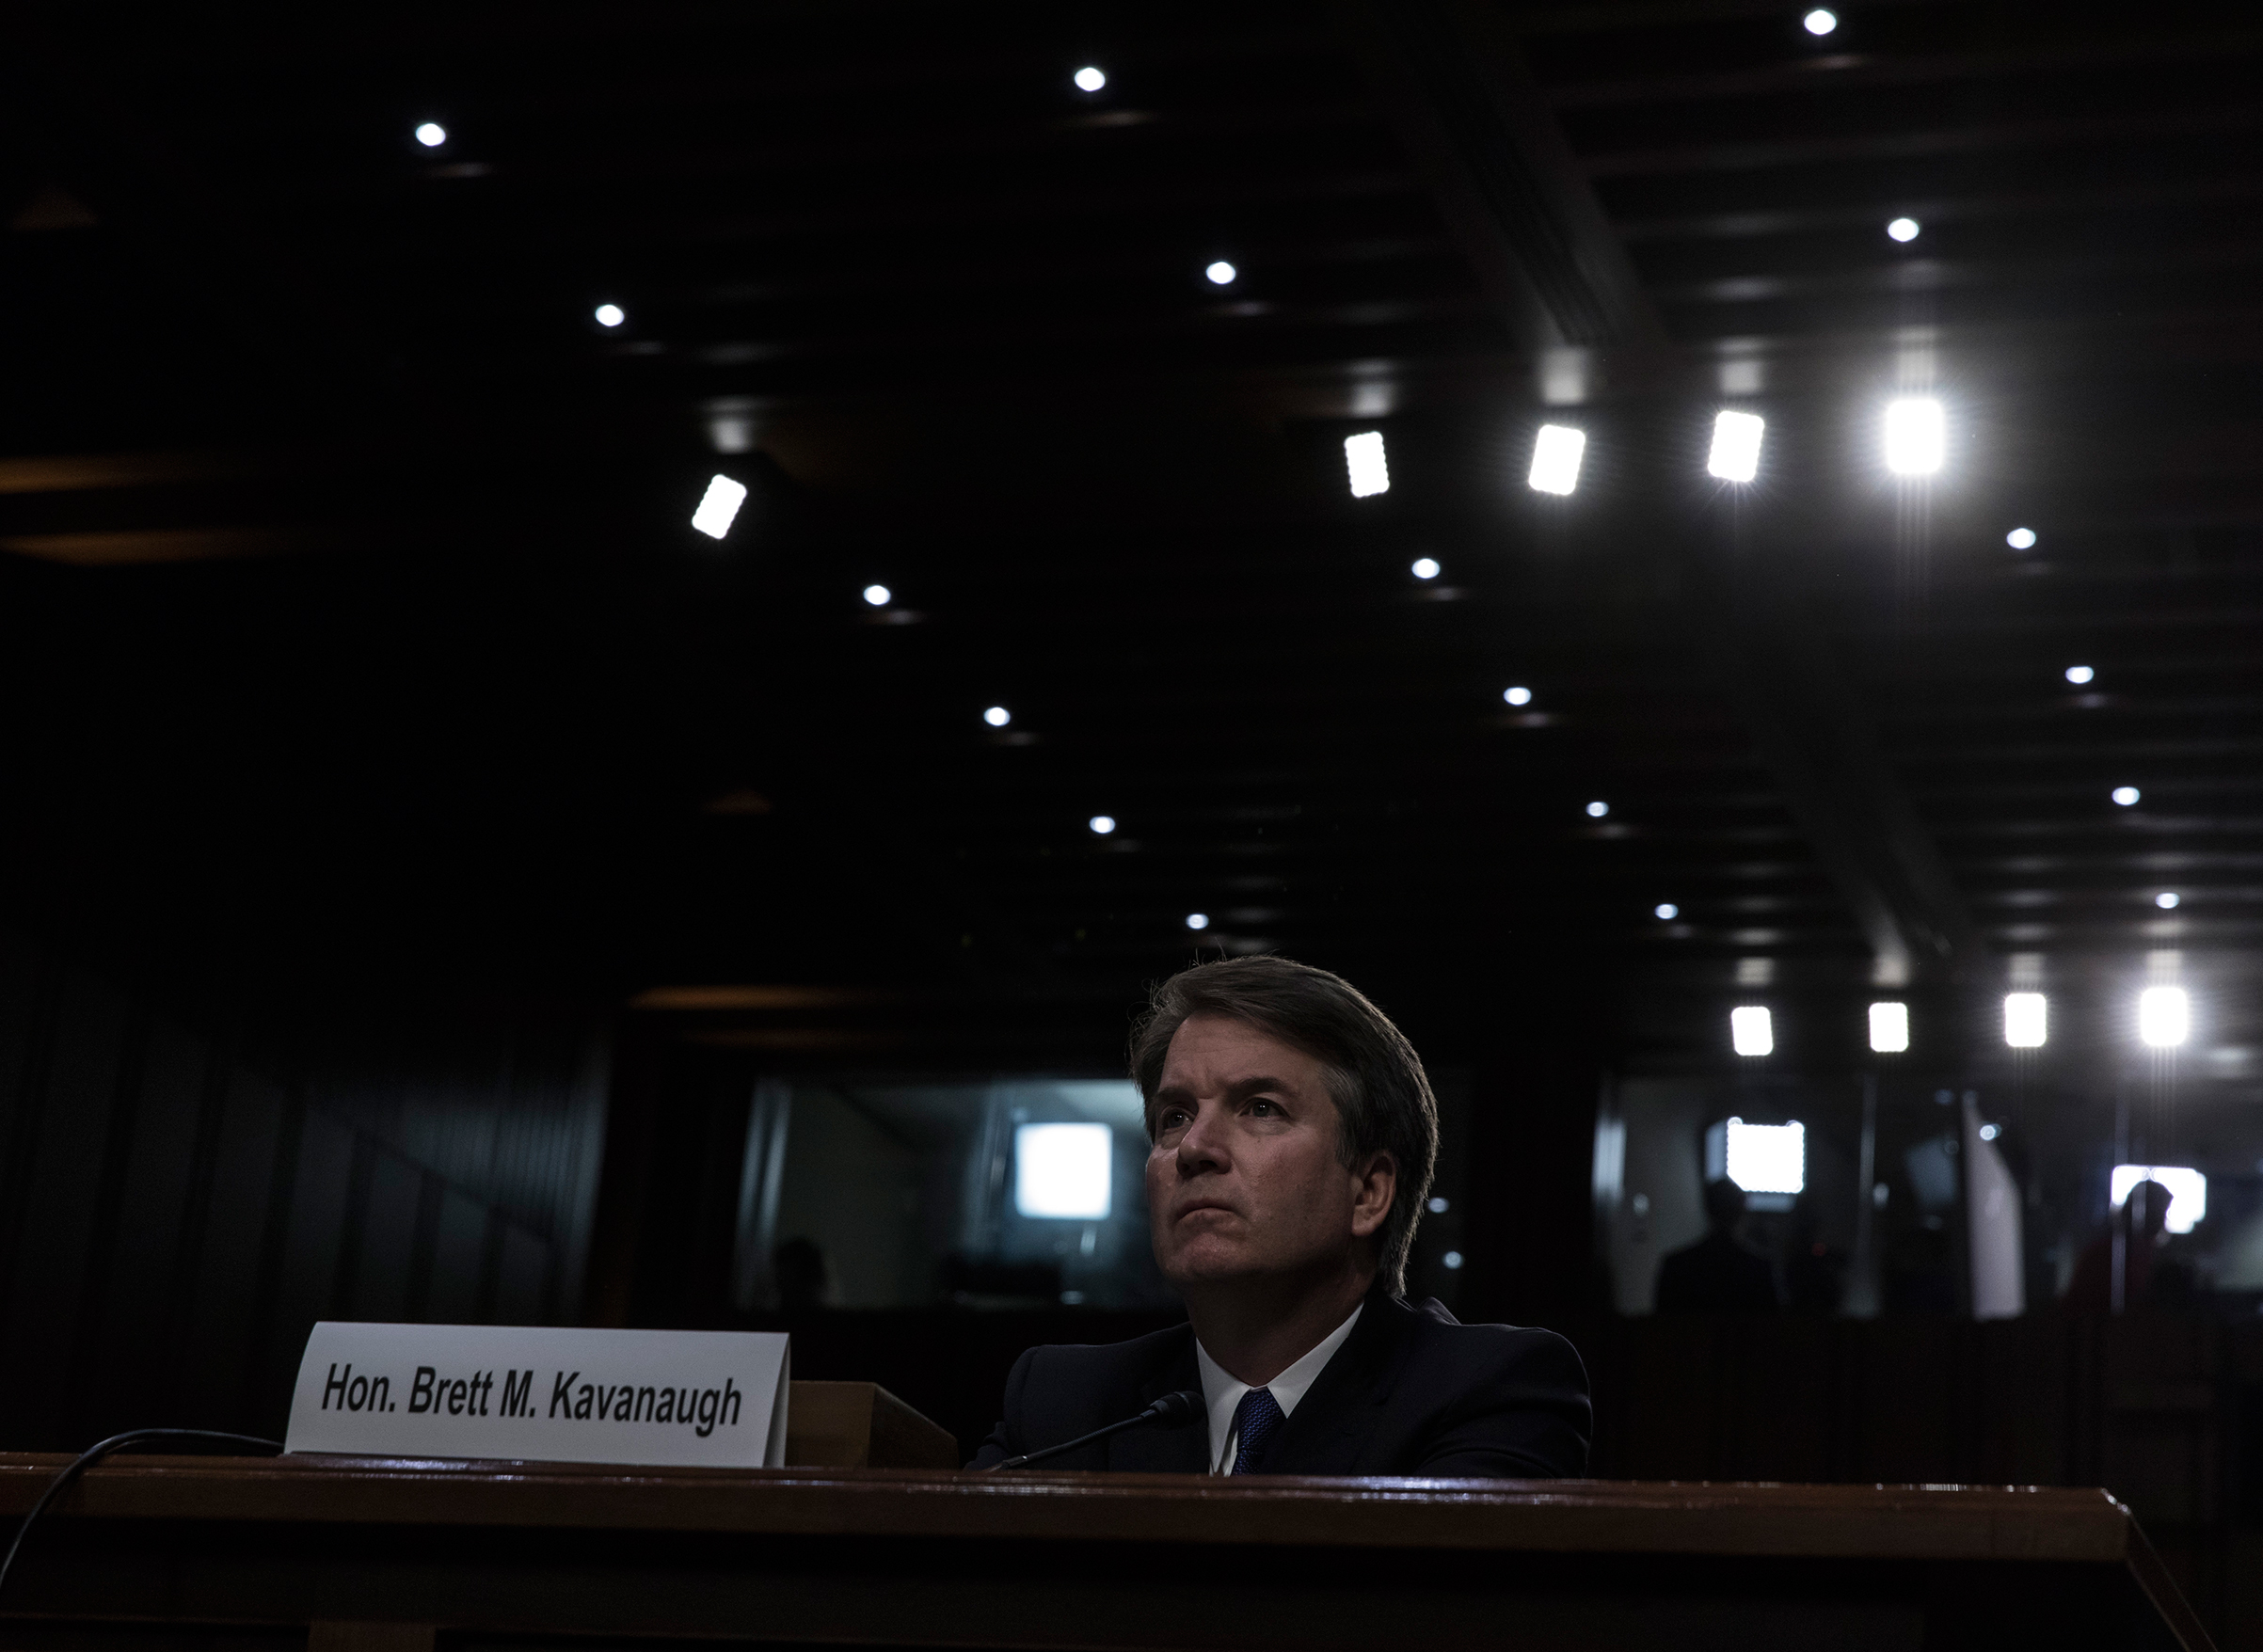 Supreme Court nominee Judge Brett Kavanaugh appears before the Senate Judiciary Committee during his Supreme Court confirmation hearing on Capitol Hill, September 4, 2018 in Washington, DC.